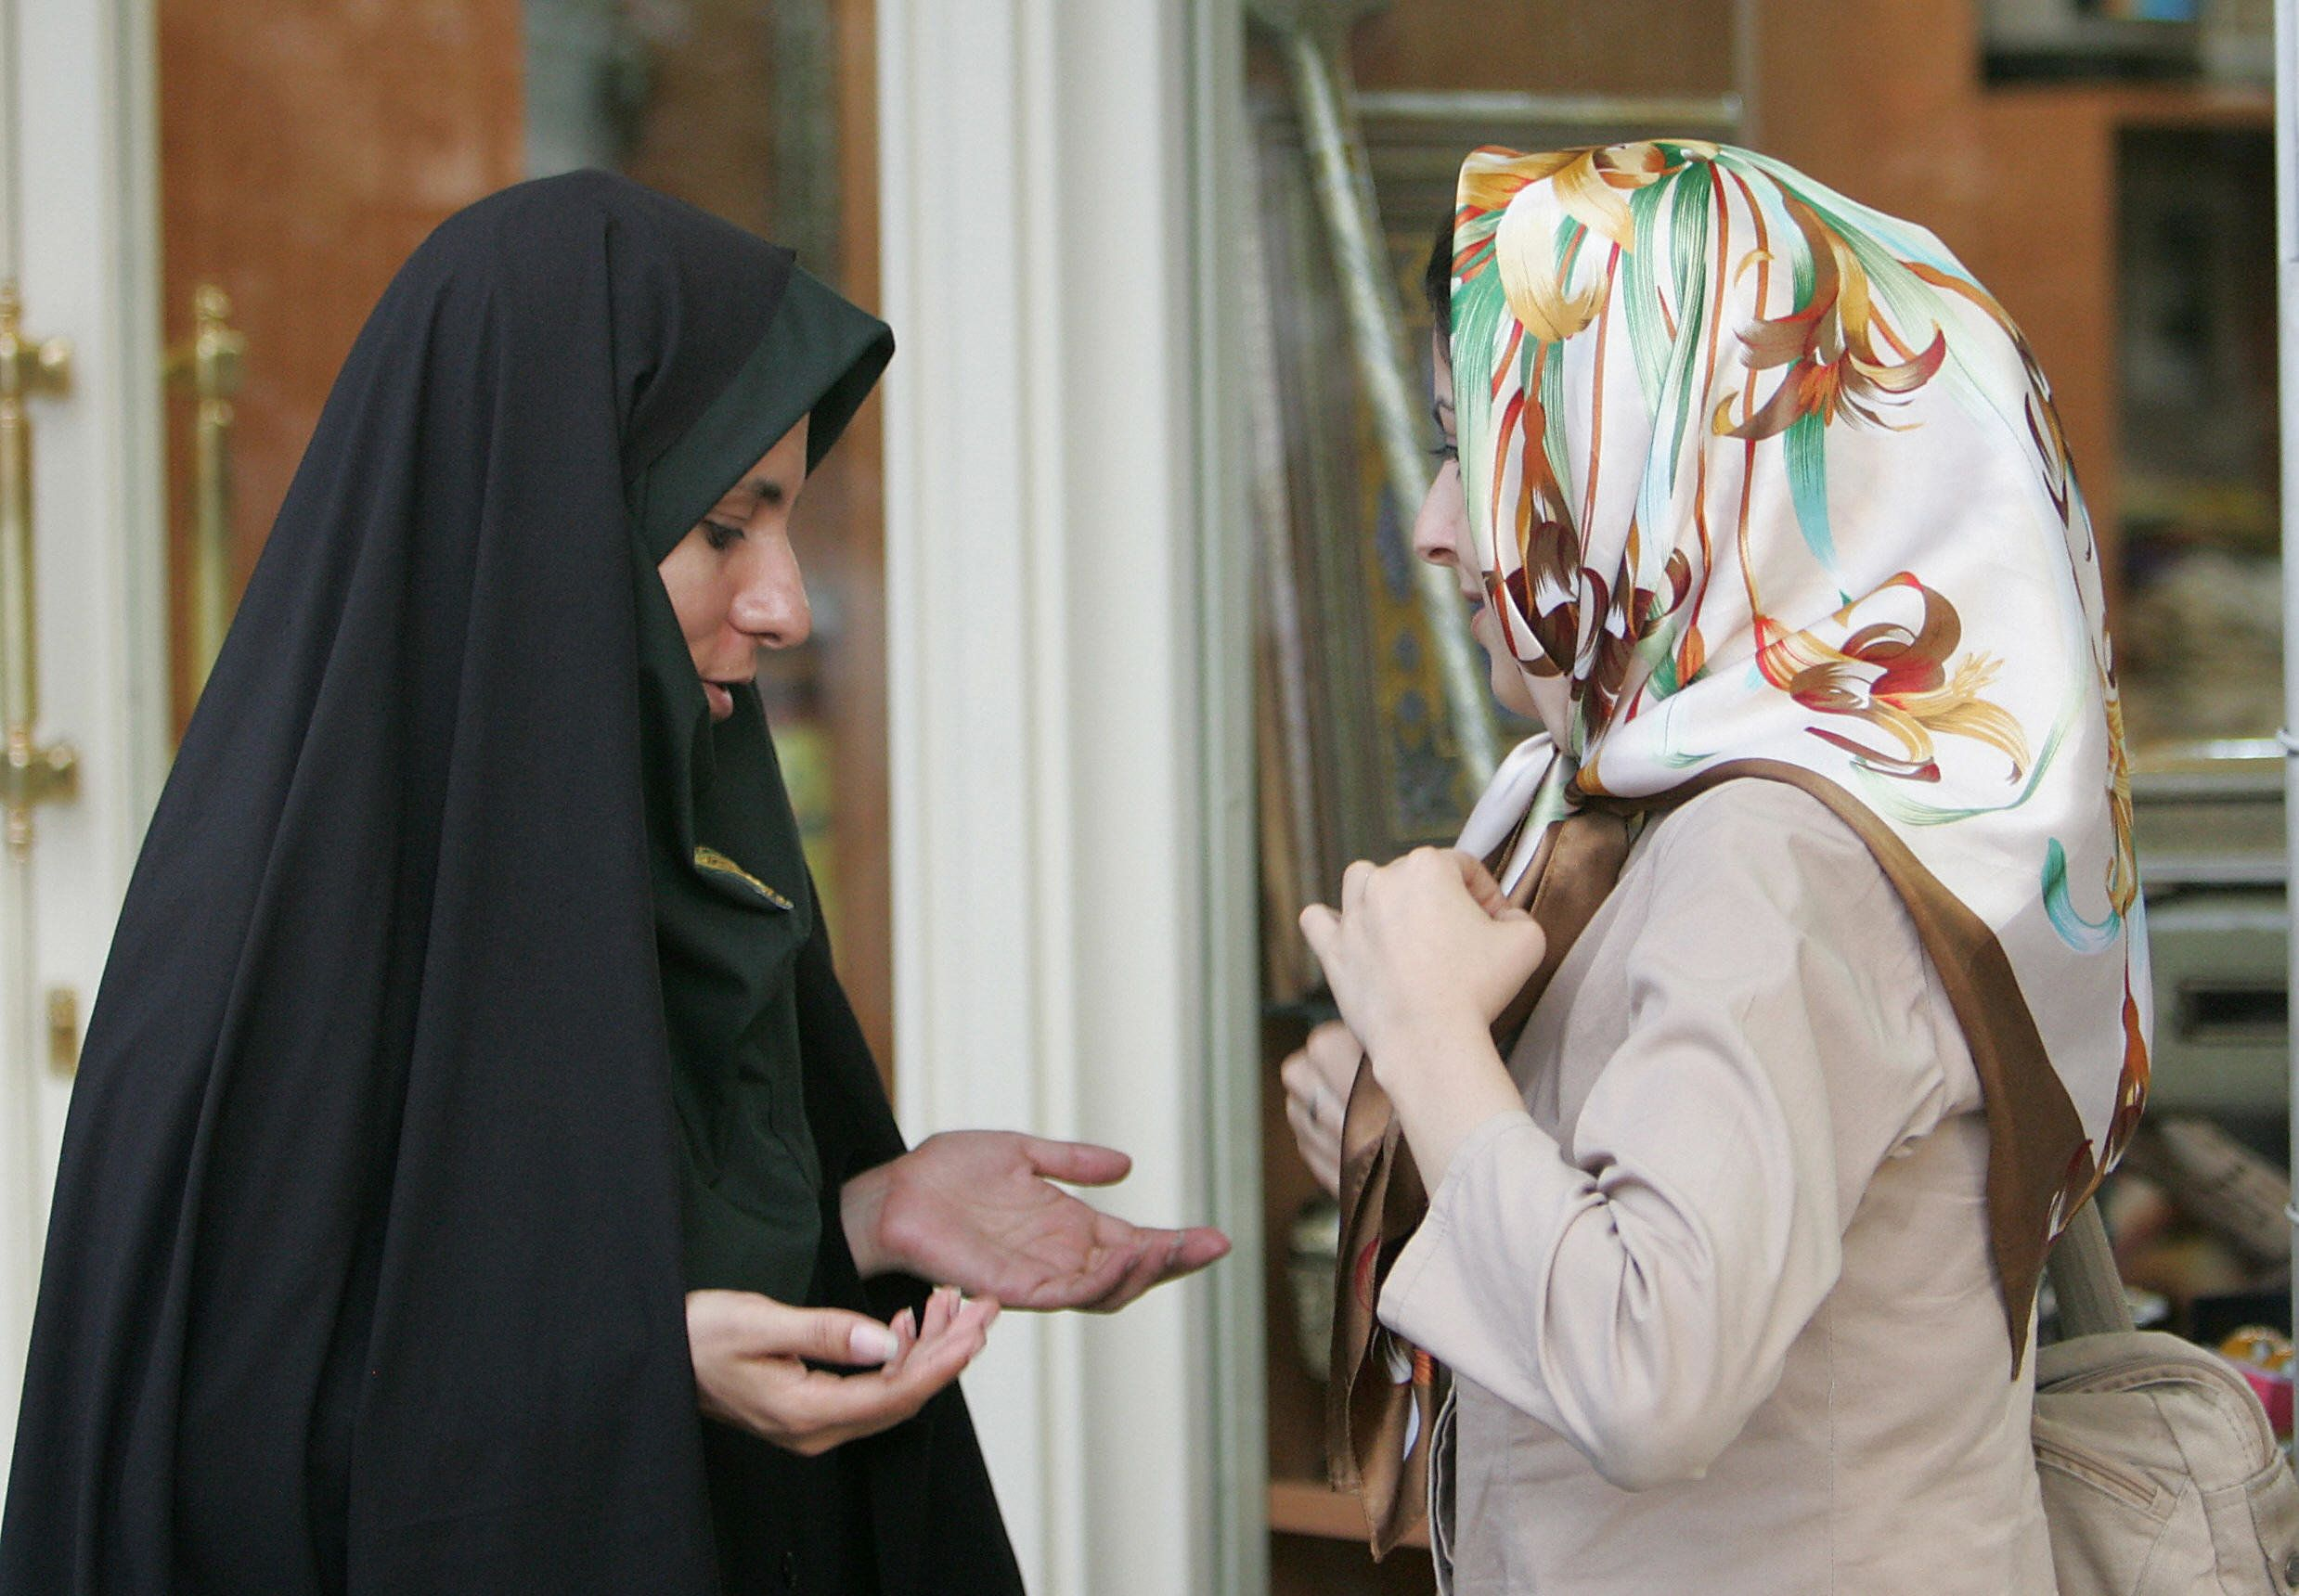 Tehran, IRAN: A female Iranian police officer (L) speaks with a woman regarding her clothing during a crackdown to enforce Islamic dress code in Tehran, 23 July 2007. Iran yesterday launched a new wave of a moral crackdown against women who 'dress like models' and men whose hairstyles are deemed unIslamic, police said. AFP PHOTO/BEHROUZ MEHRI (Photo credit should read BEHROUZ MEHRI/AFP/Getty Images)